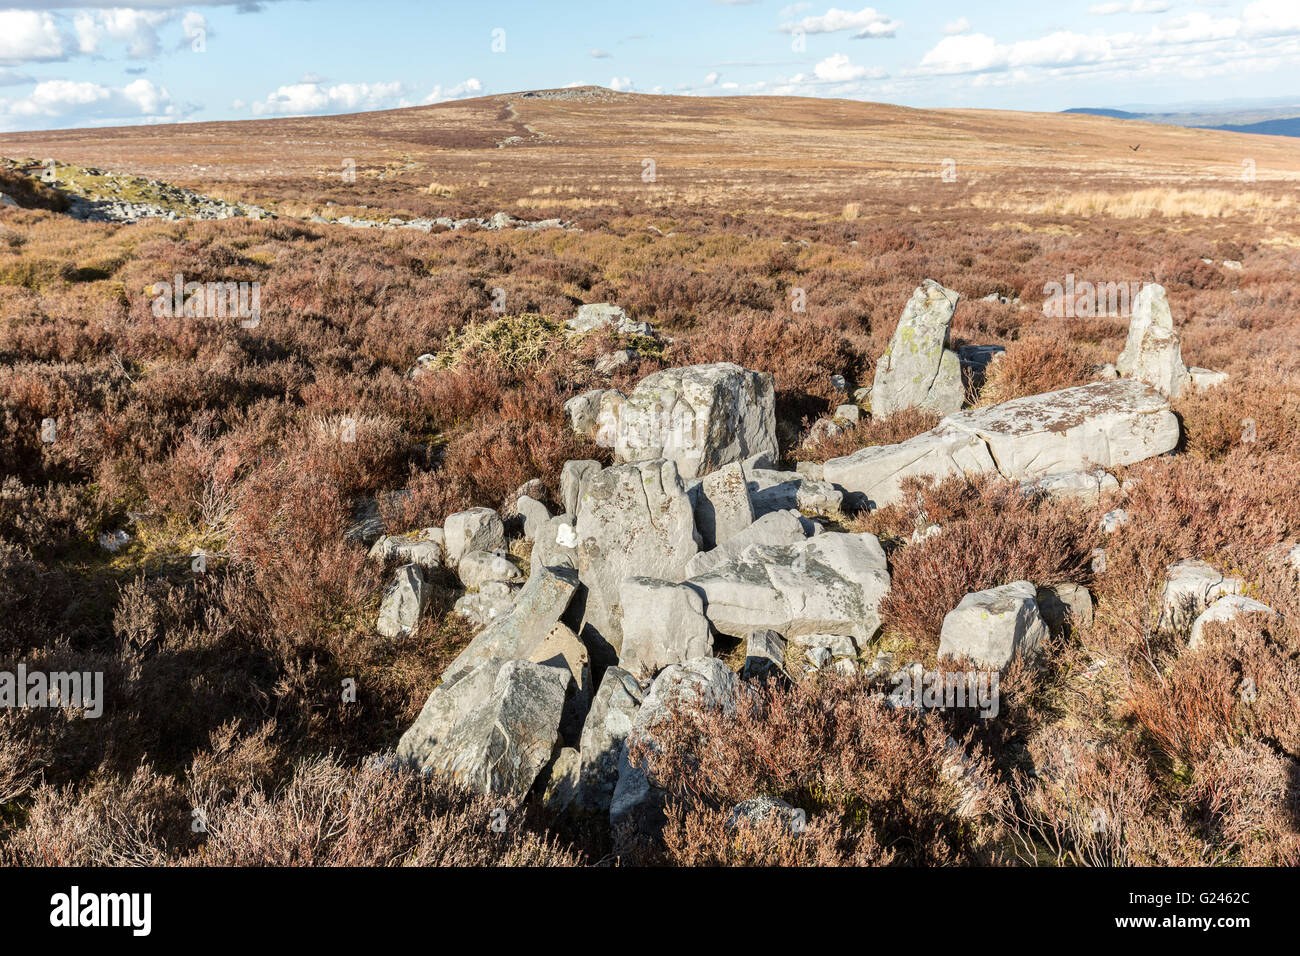 Millstone grit boulders on moorland, Blorenge, Wales, UK - Stock Image